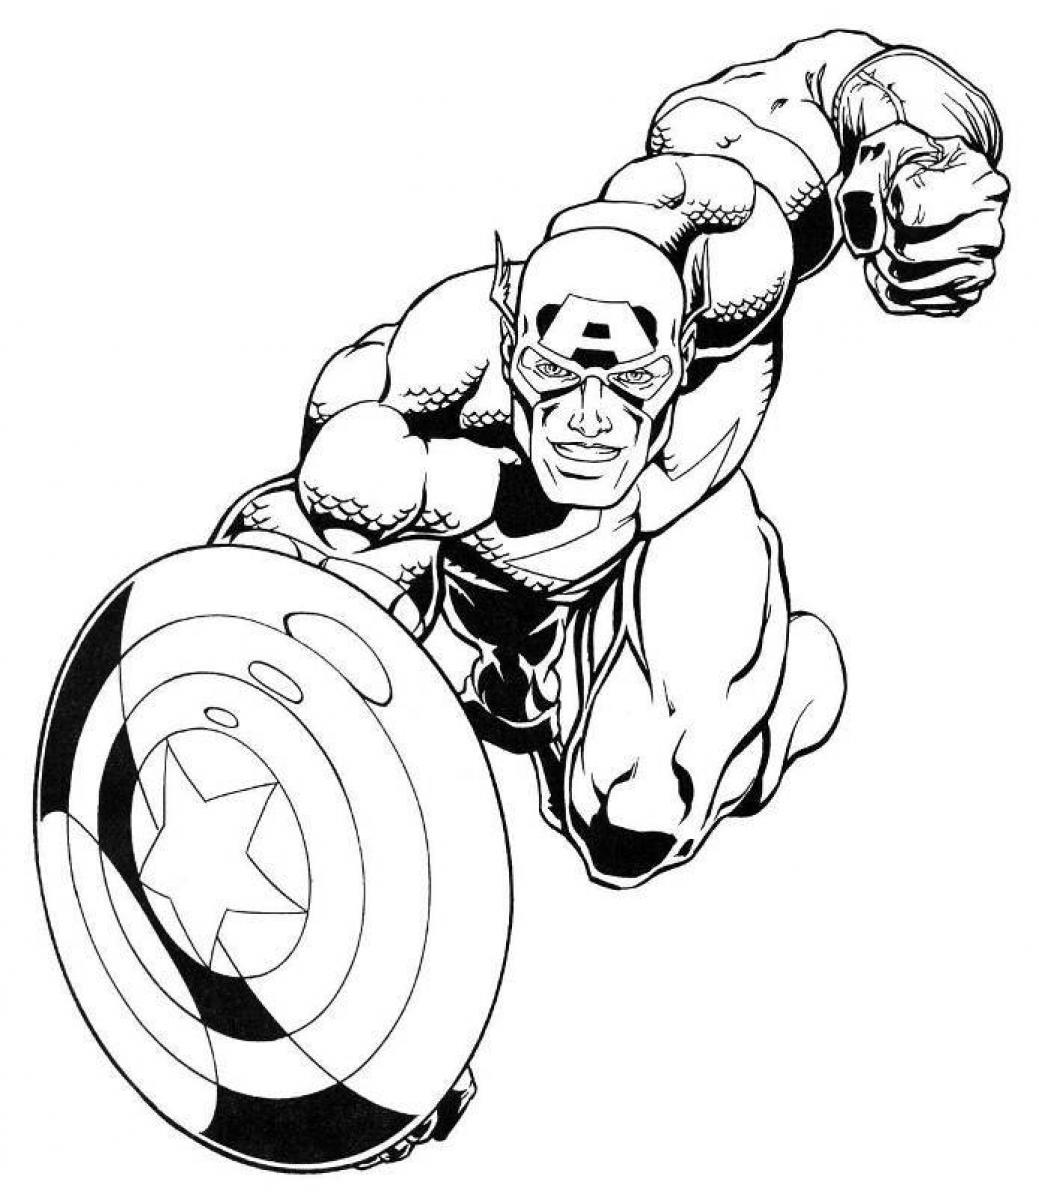 marvel superheroes coloring pages - photo#35